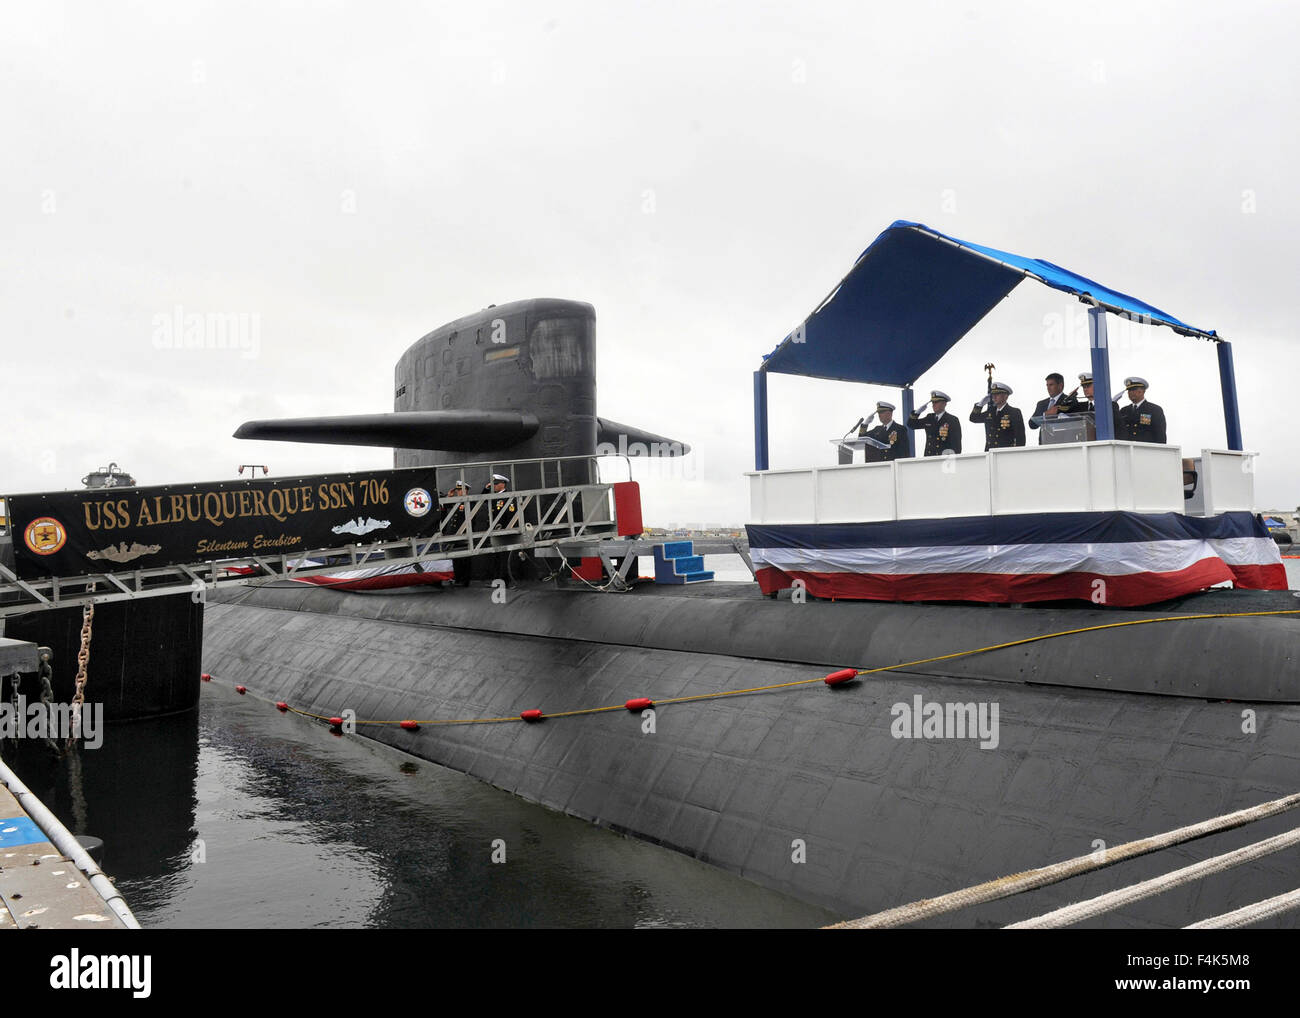 US Navy Los Angeles-class fast-attack submarine USS Albuquerque during a ceremony celebrating 32 years of service - Stock Image